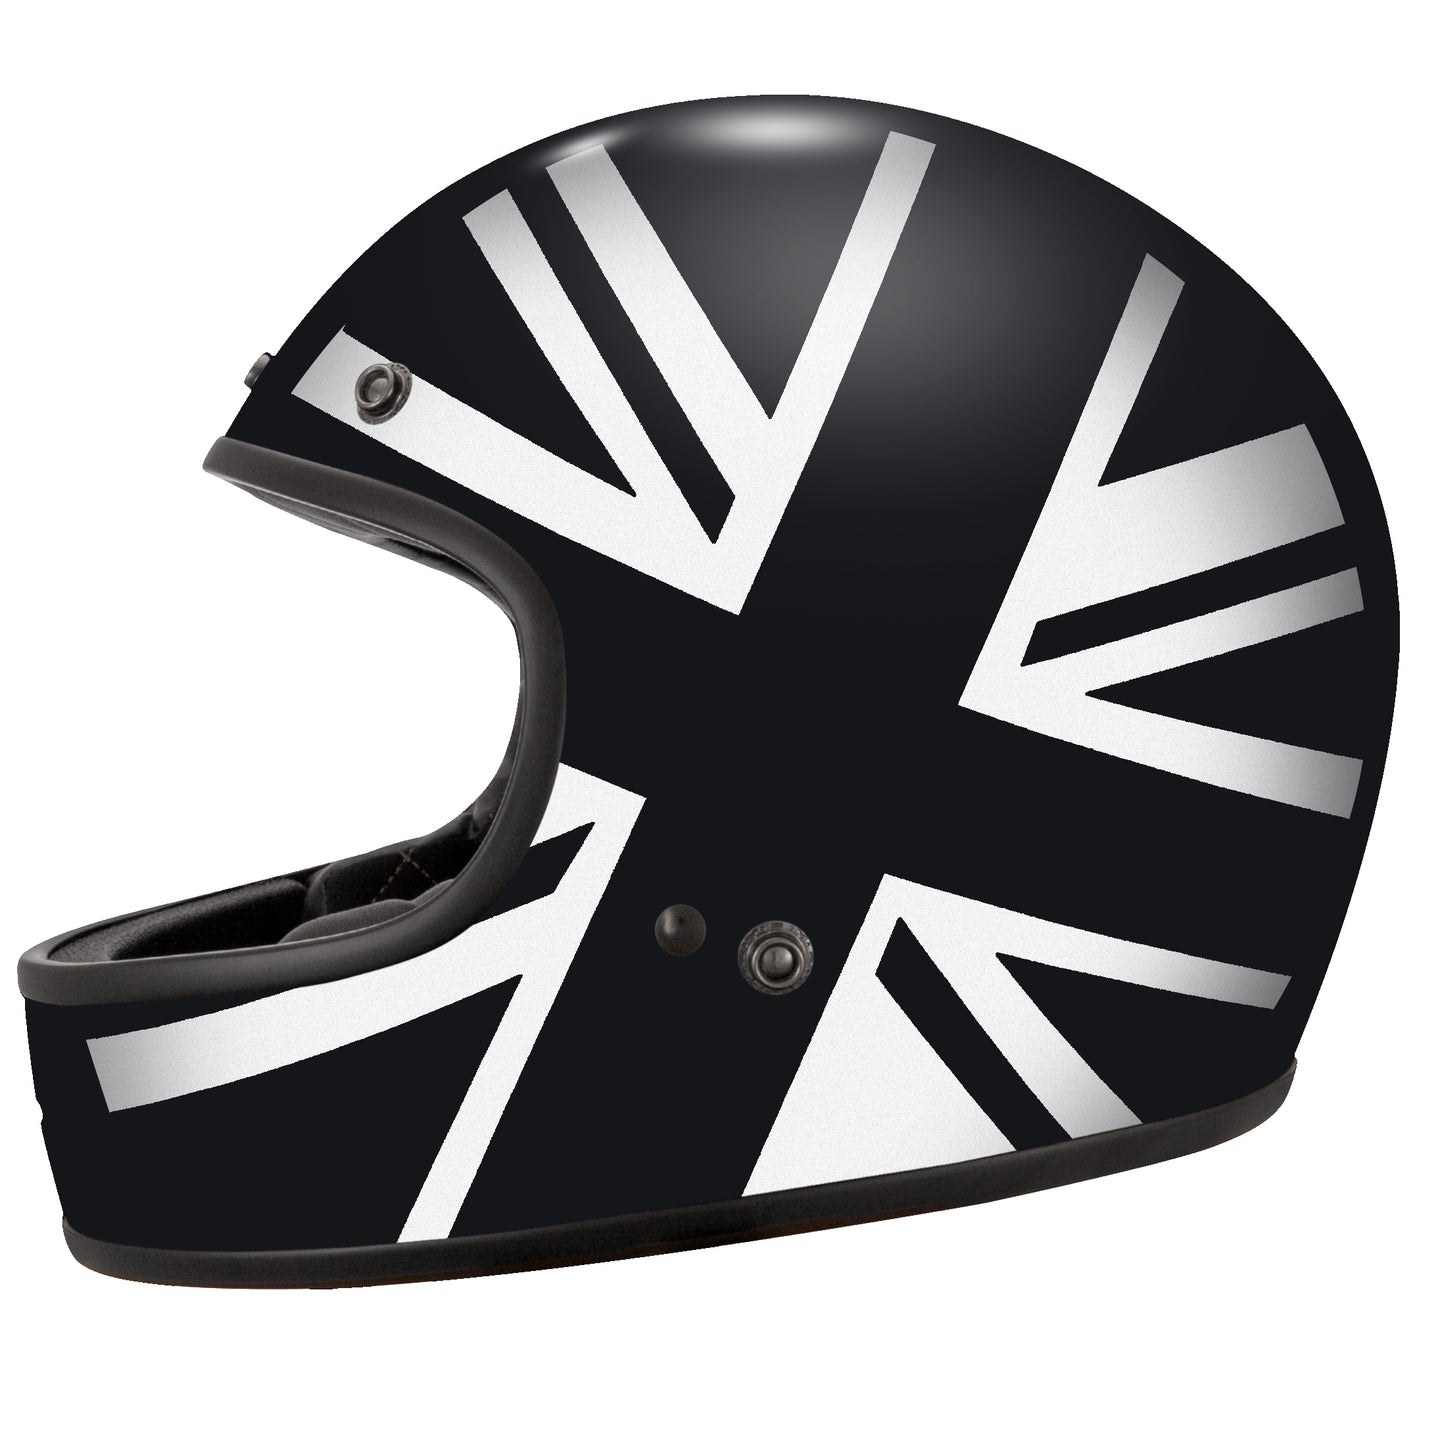 Union Jack White on Black Helmet Design